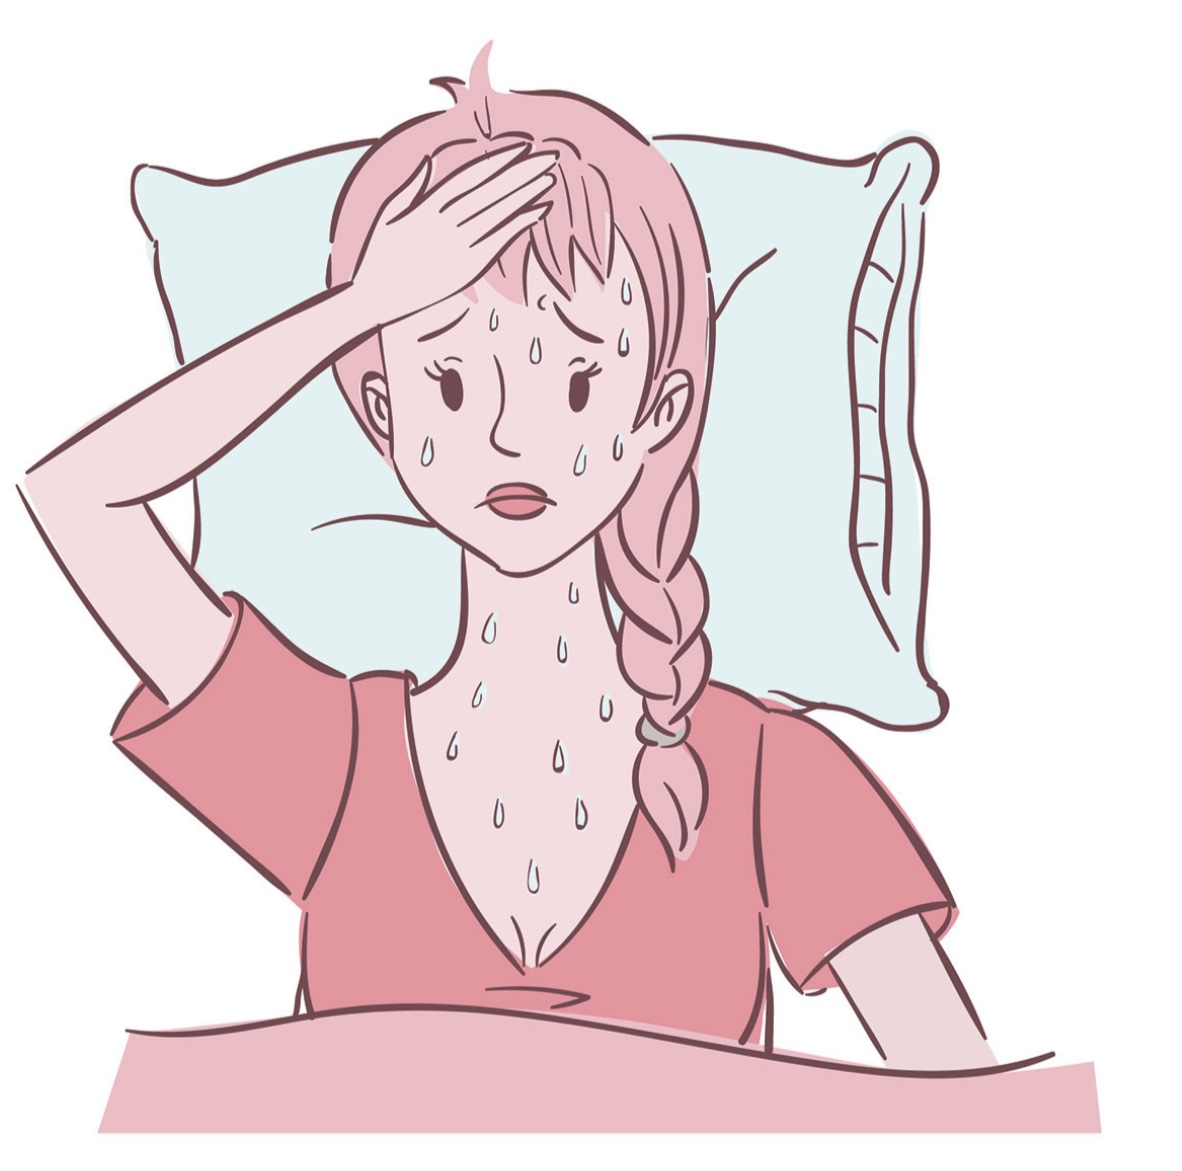 Why do I get night sweats?